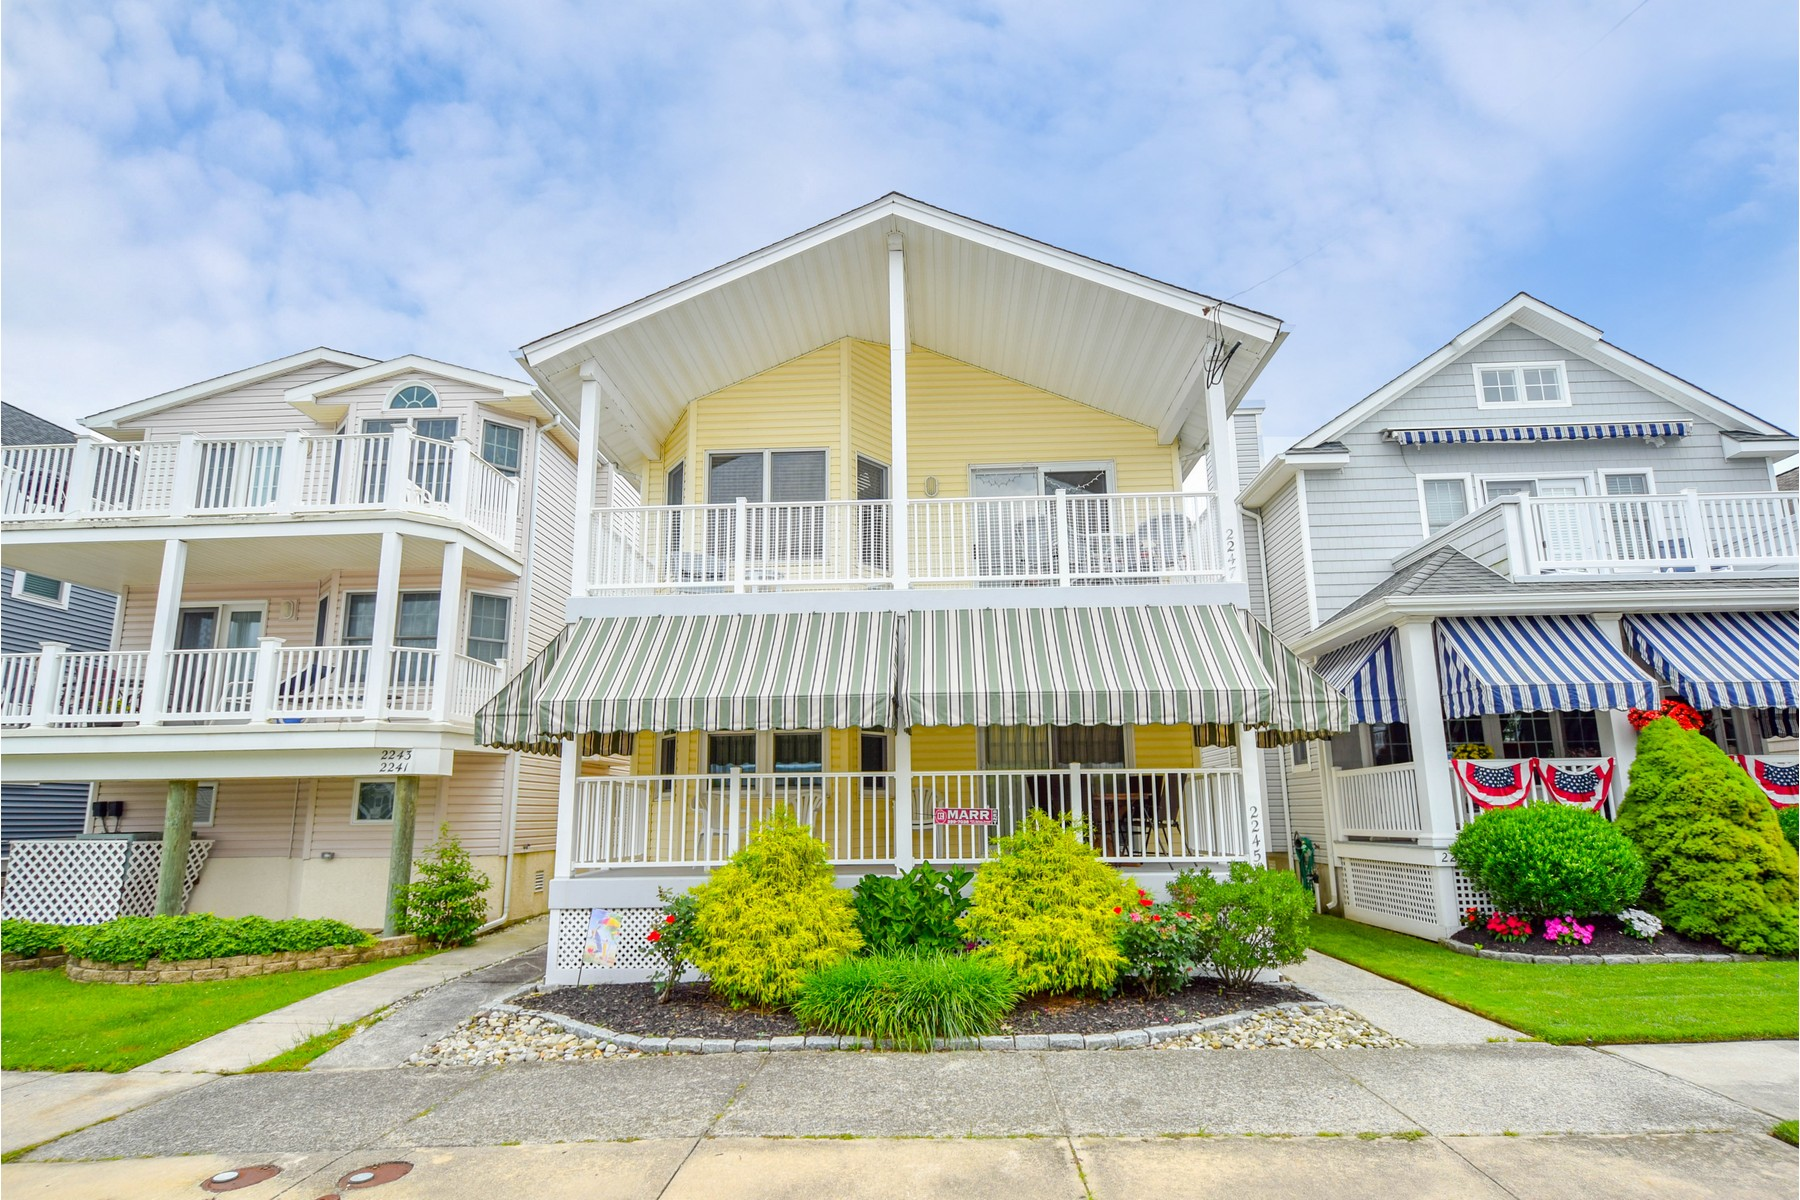 Condominiums for Sale at Pride in Ownership 2247 Asbury Ave 2 Ocean City, New Jersey 08226 United States